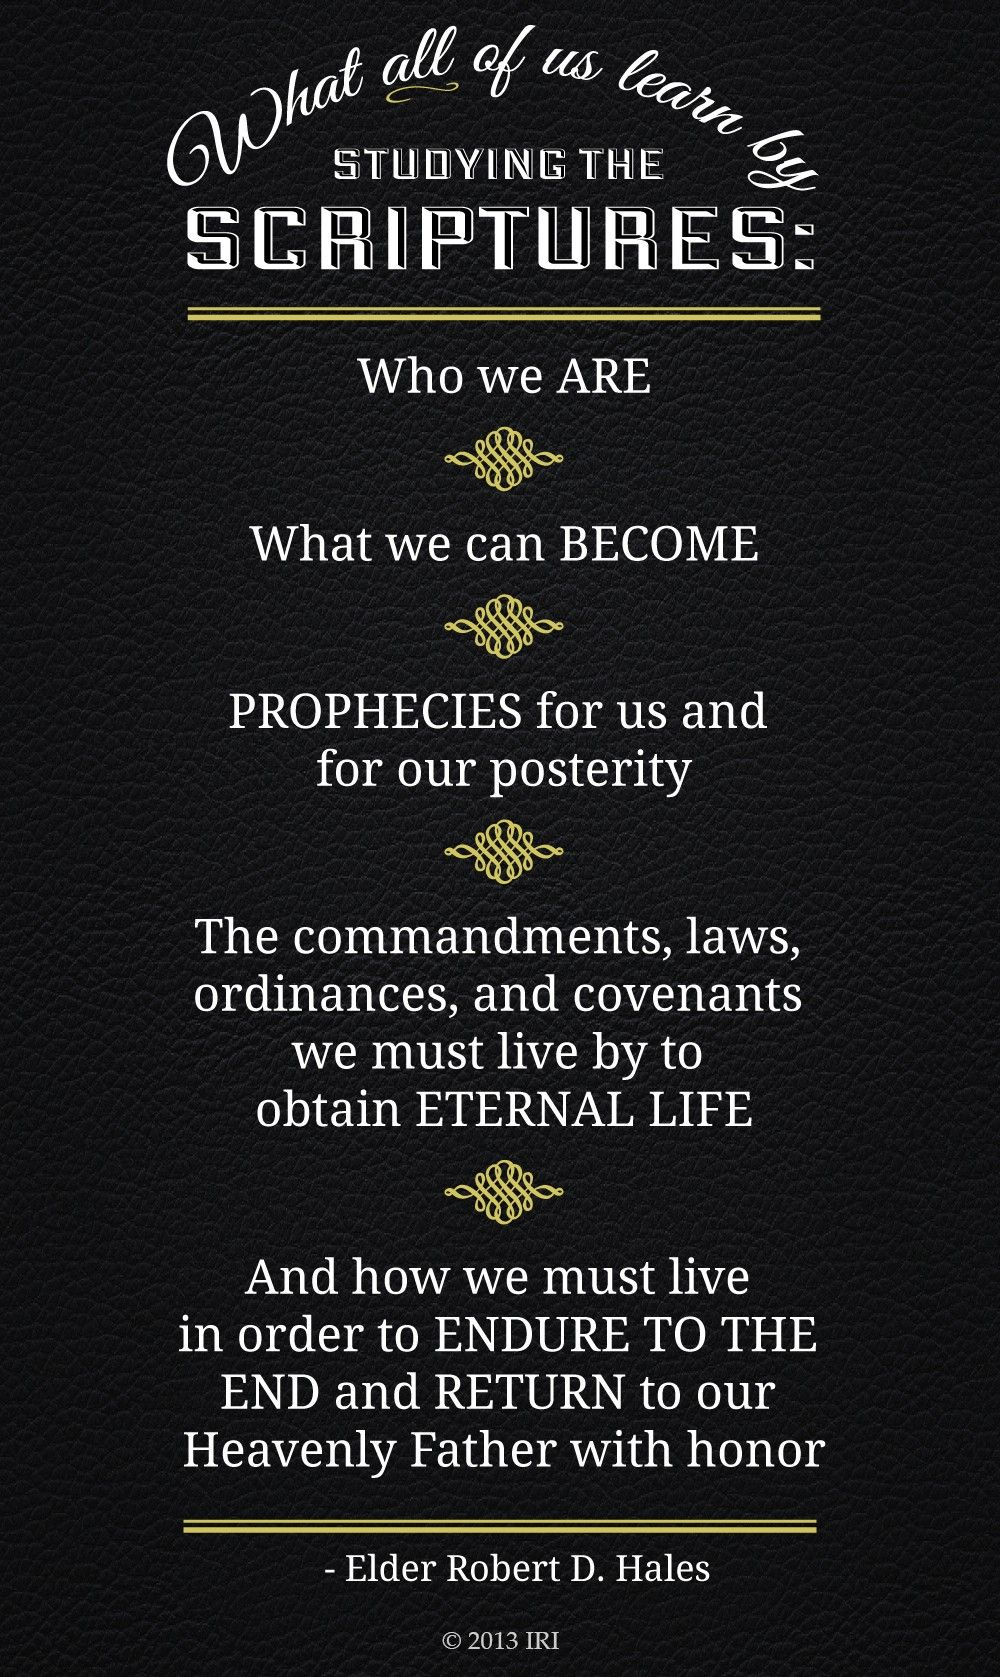 """""""What all of us learn by studying the scriptures: Who we are. What we can become. Prophecies for us and for our posterity. The commandments, laws, ordinances, and covenants we must live by to obtain eternal life. And how we must live in order to endure to the end and return to our Heavenly Father with honor.""""—Elder Robert D. Hales, """"Holy Scriptures: The Power of God unto Our Salvation"""""""